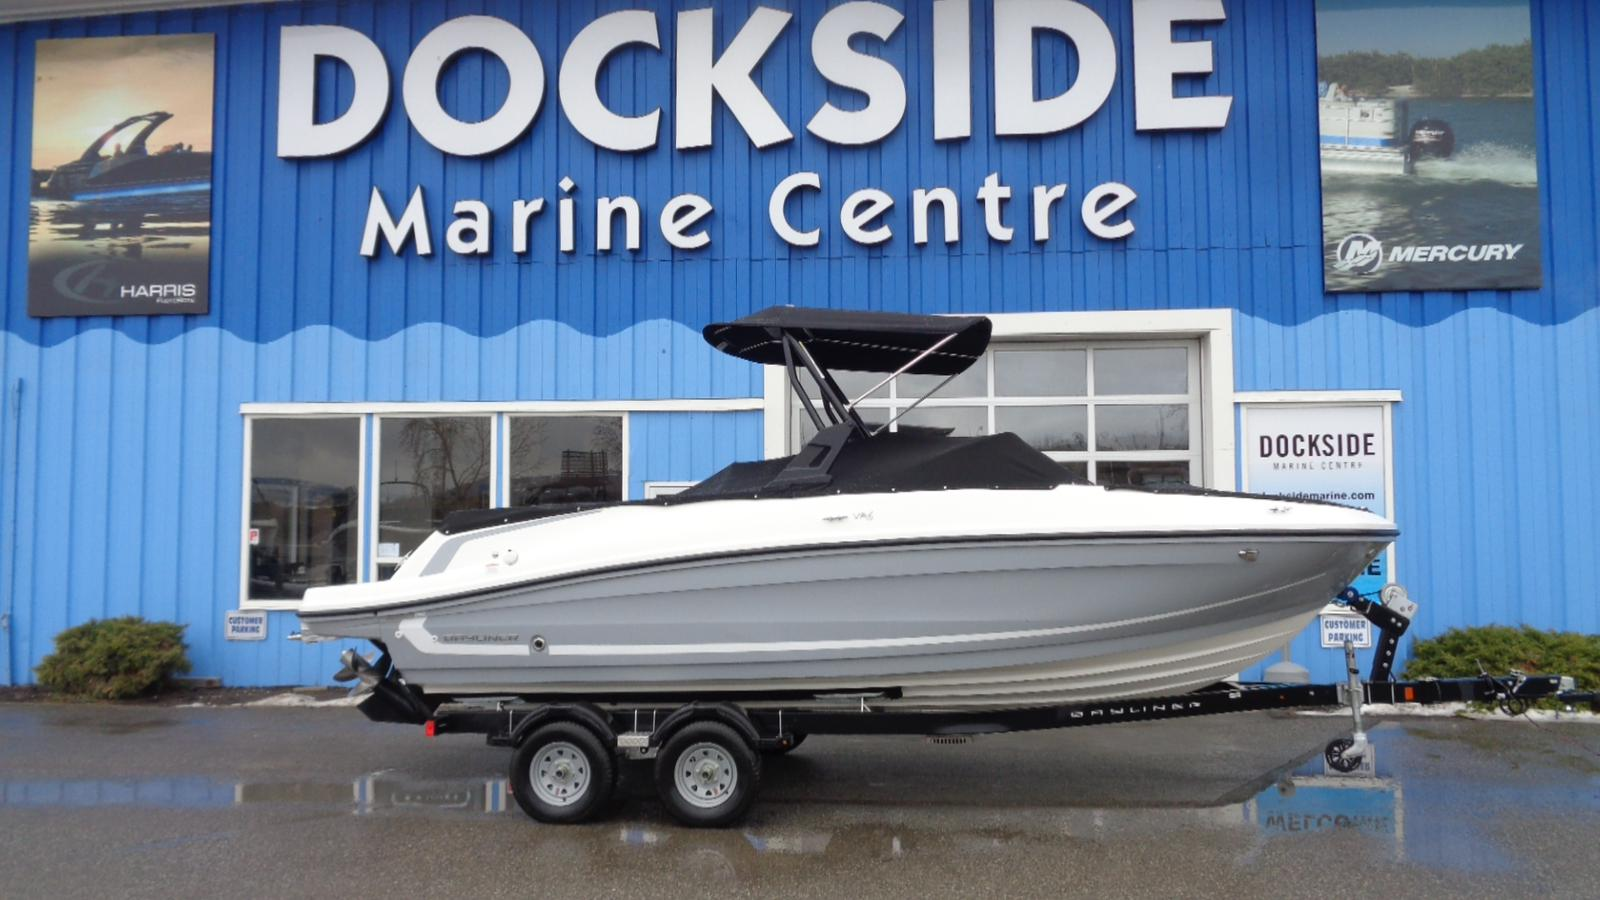 For Sale: 2018 Bayliner Vr6 23ft<br/>Dockside Marine Centre, LTD.